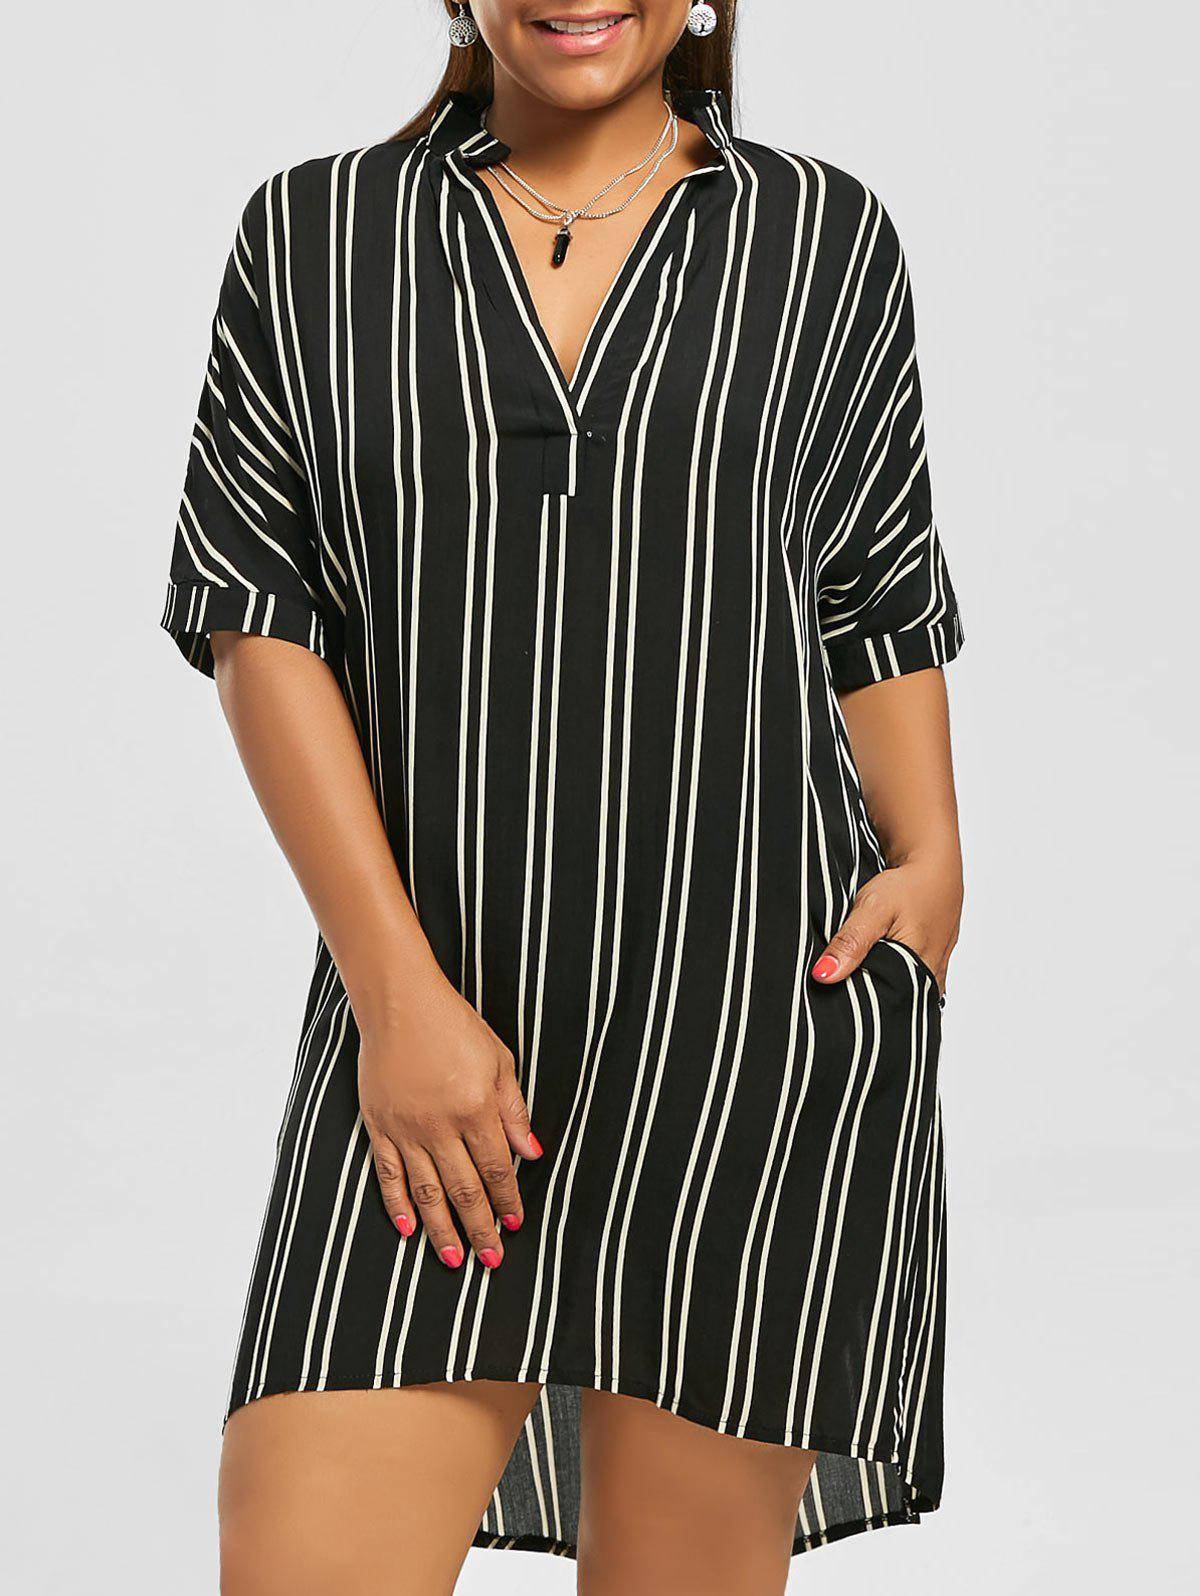 Casual Knee Length Plus Size Pockets High Low Stripe Shirt DressWOMEN<br><br>Size: 5XL; Color: BLACK; Style: Casual; Material: Cotton Blend,Polyester; Silhouette: A-Line; Dresses Length: Knee-Length; Neckline: V-Neck; Sleeve Length: Short Sleeves; Embellishment: Front Pocket; Pattern Type: Striped; With Belt: No; Season: Fall,Spring; Weight: 0.3100kg; Package Contents: 1 x Dress;